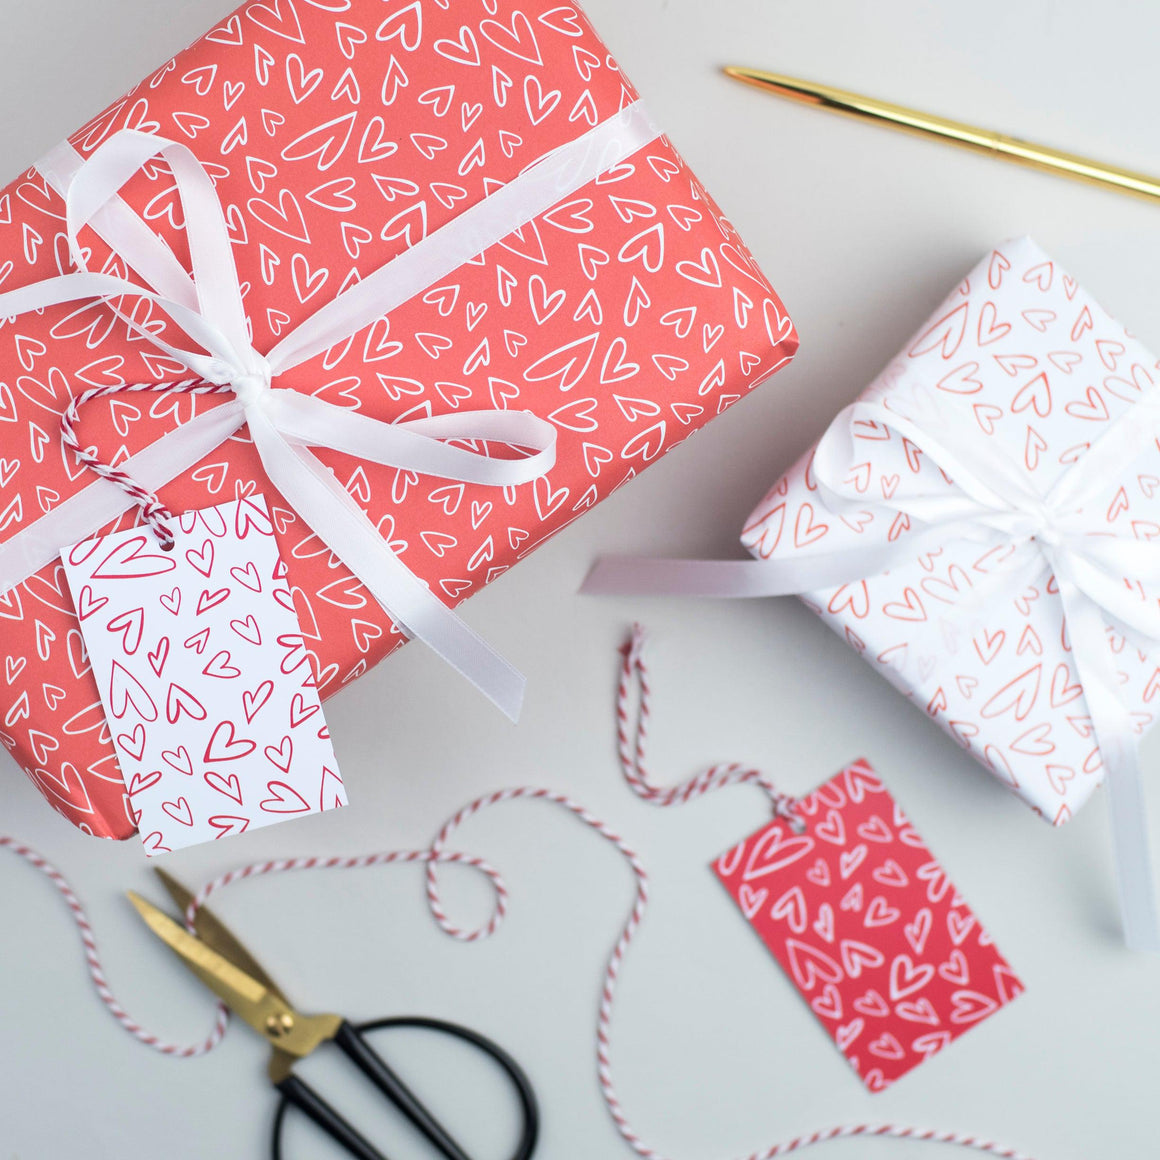 Handdrawn Heart Valentine's Wrapping Paper Set